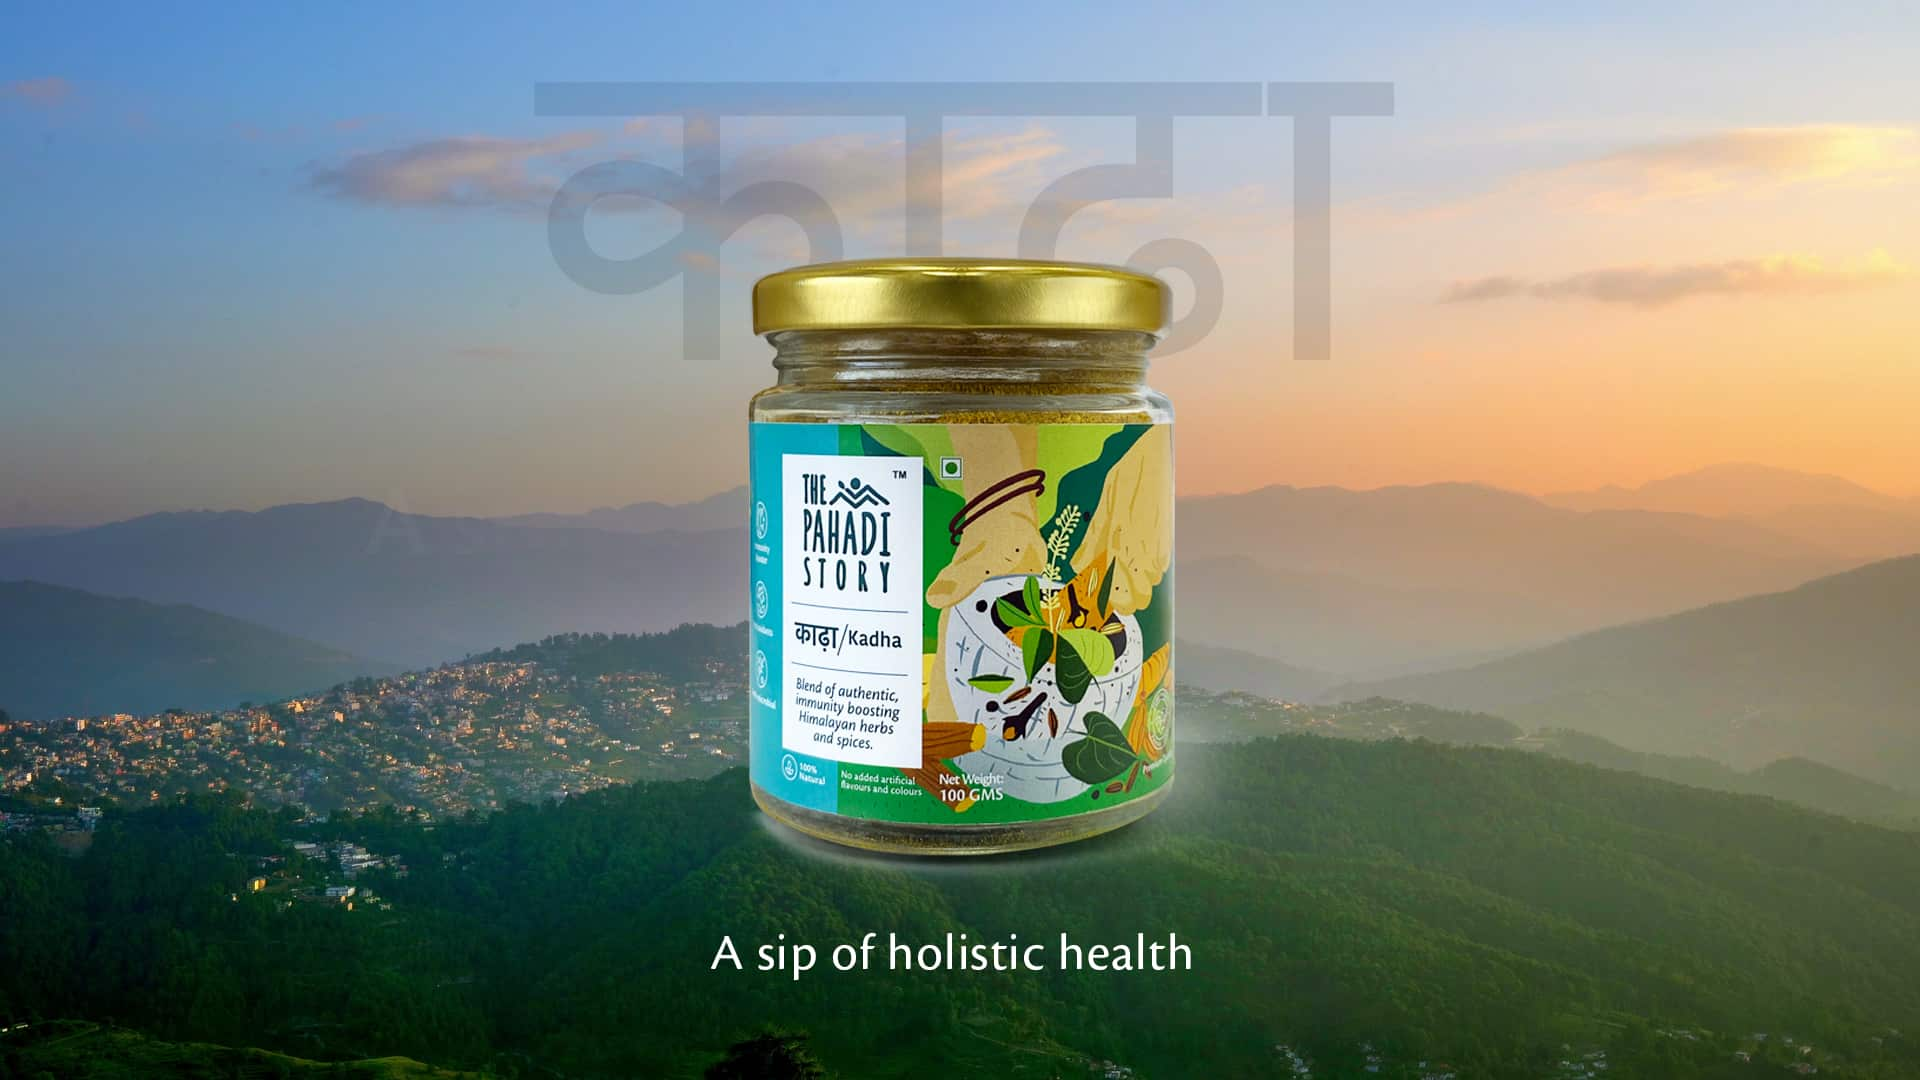 The Pahadi Story launches new range of immunity strengthening blends